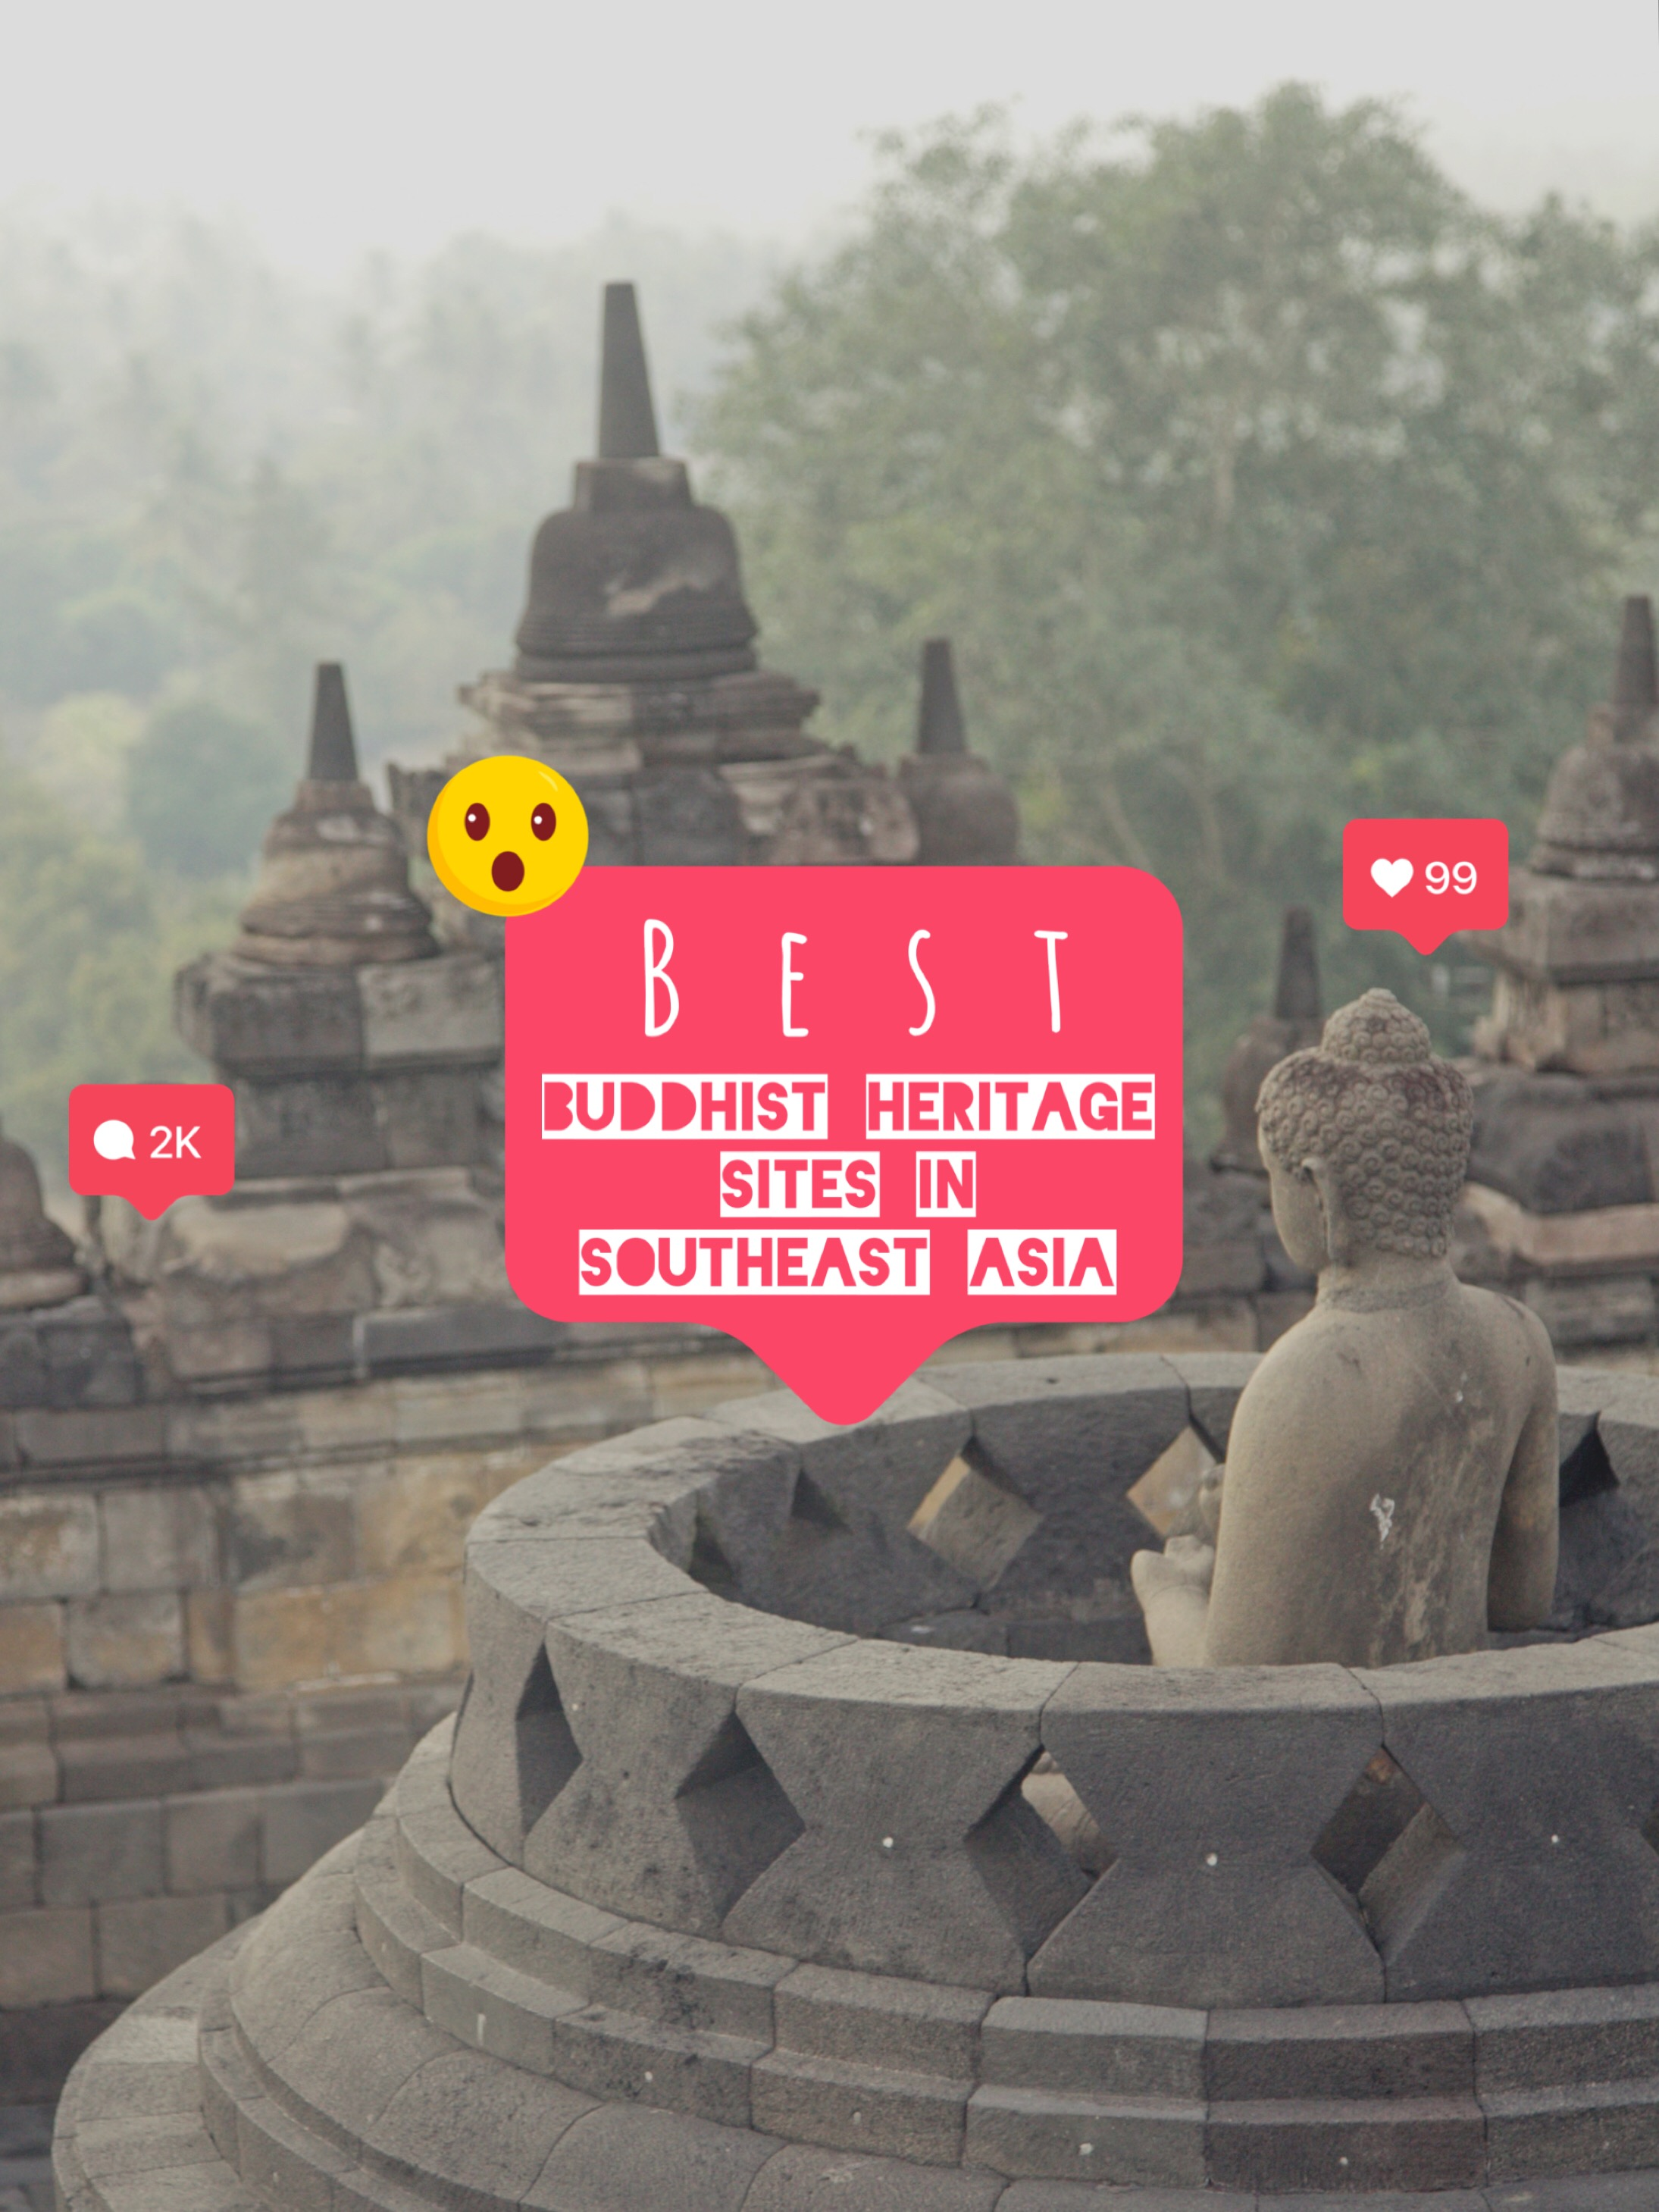 Three of the Best Buddhist Heritage Sites in Southeast Asia